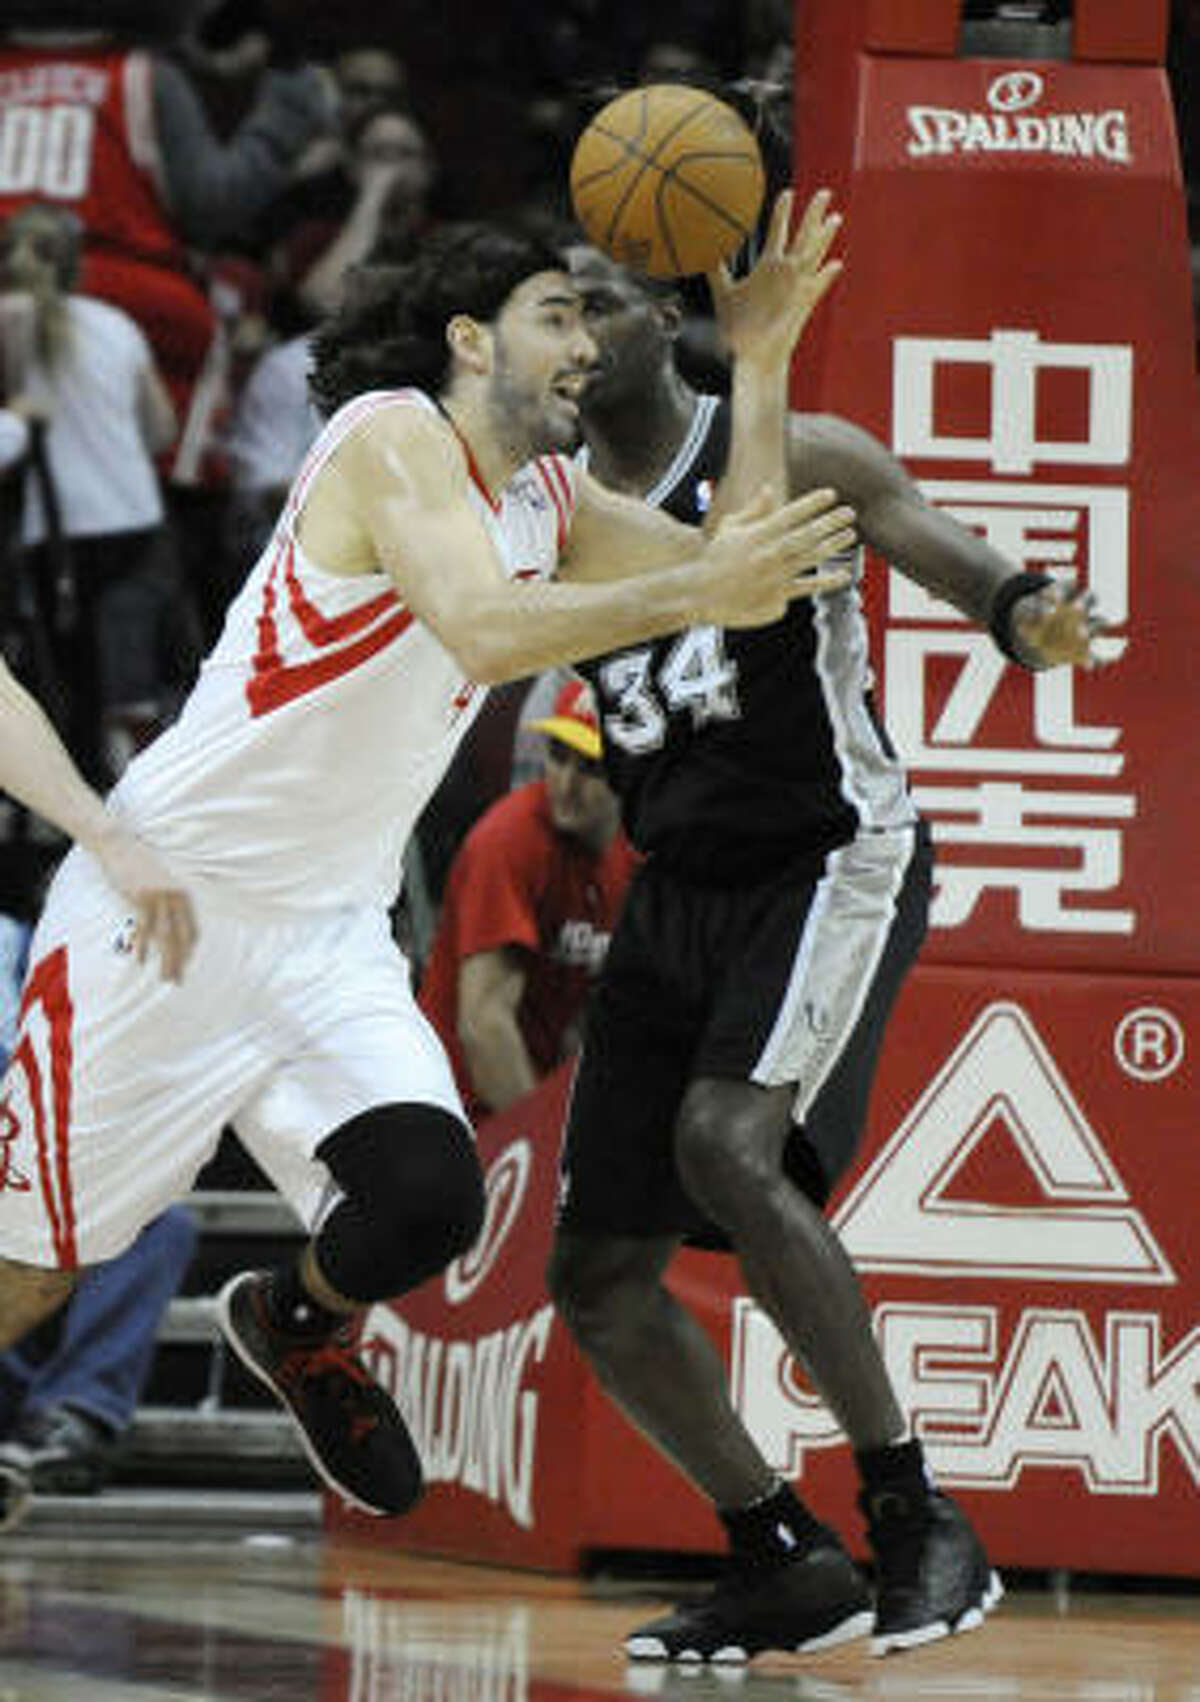 Rockets forward Luis Scola, left, tries to maintain control of the ball while under pressure from San Antonio's Antonio McDyess during the first half.